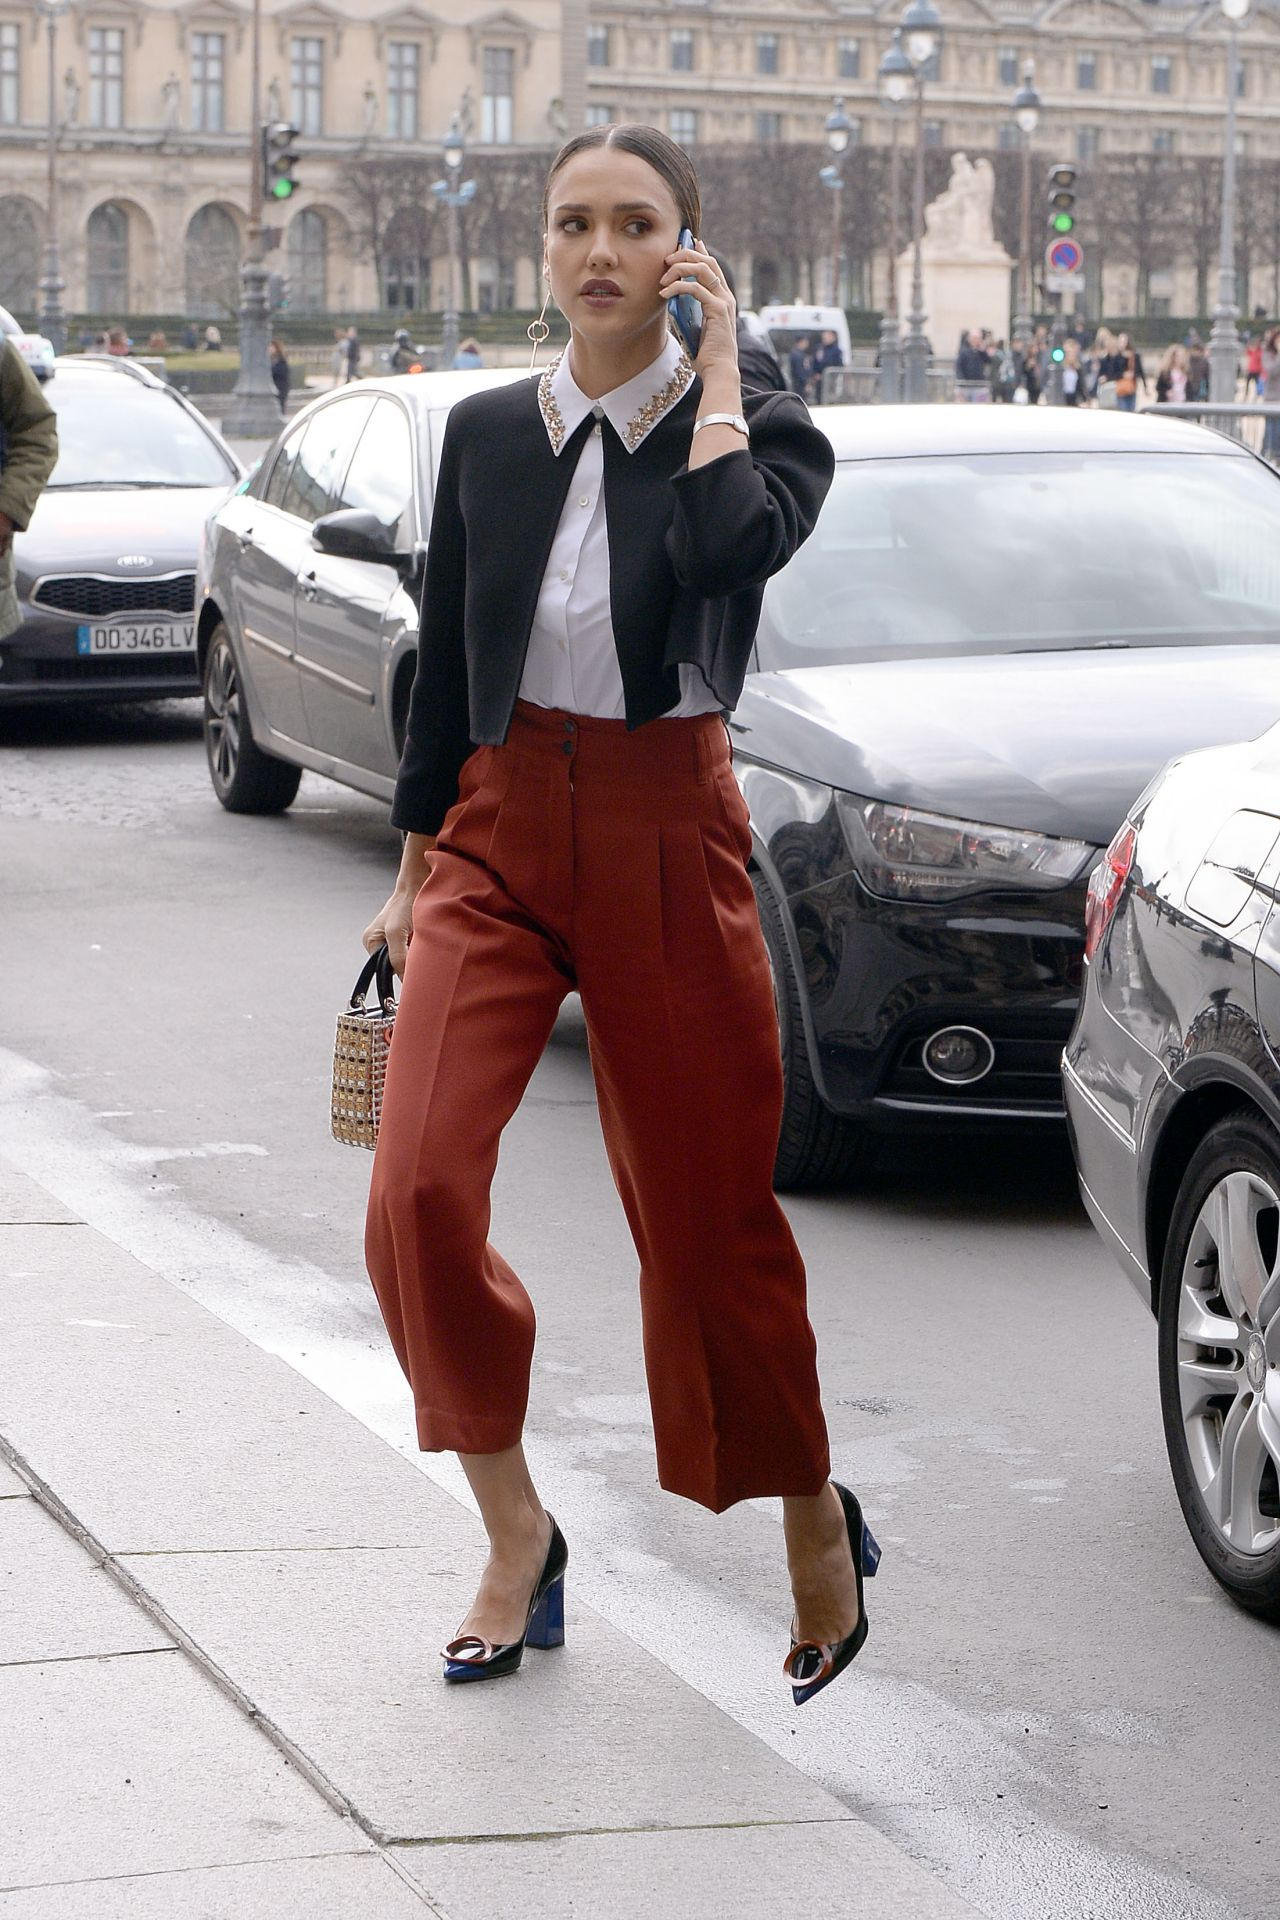 Jessica Alba On Her Way To The Dior Fashion Show In Paris 3 4 2016